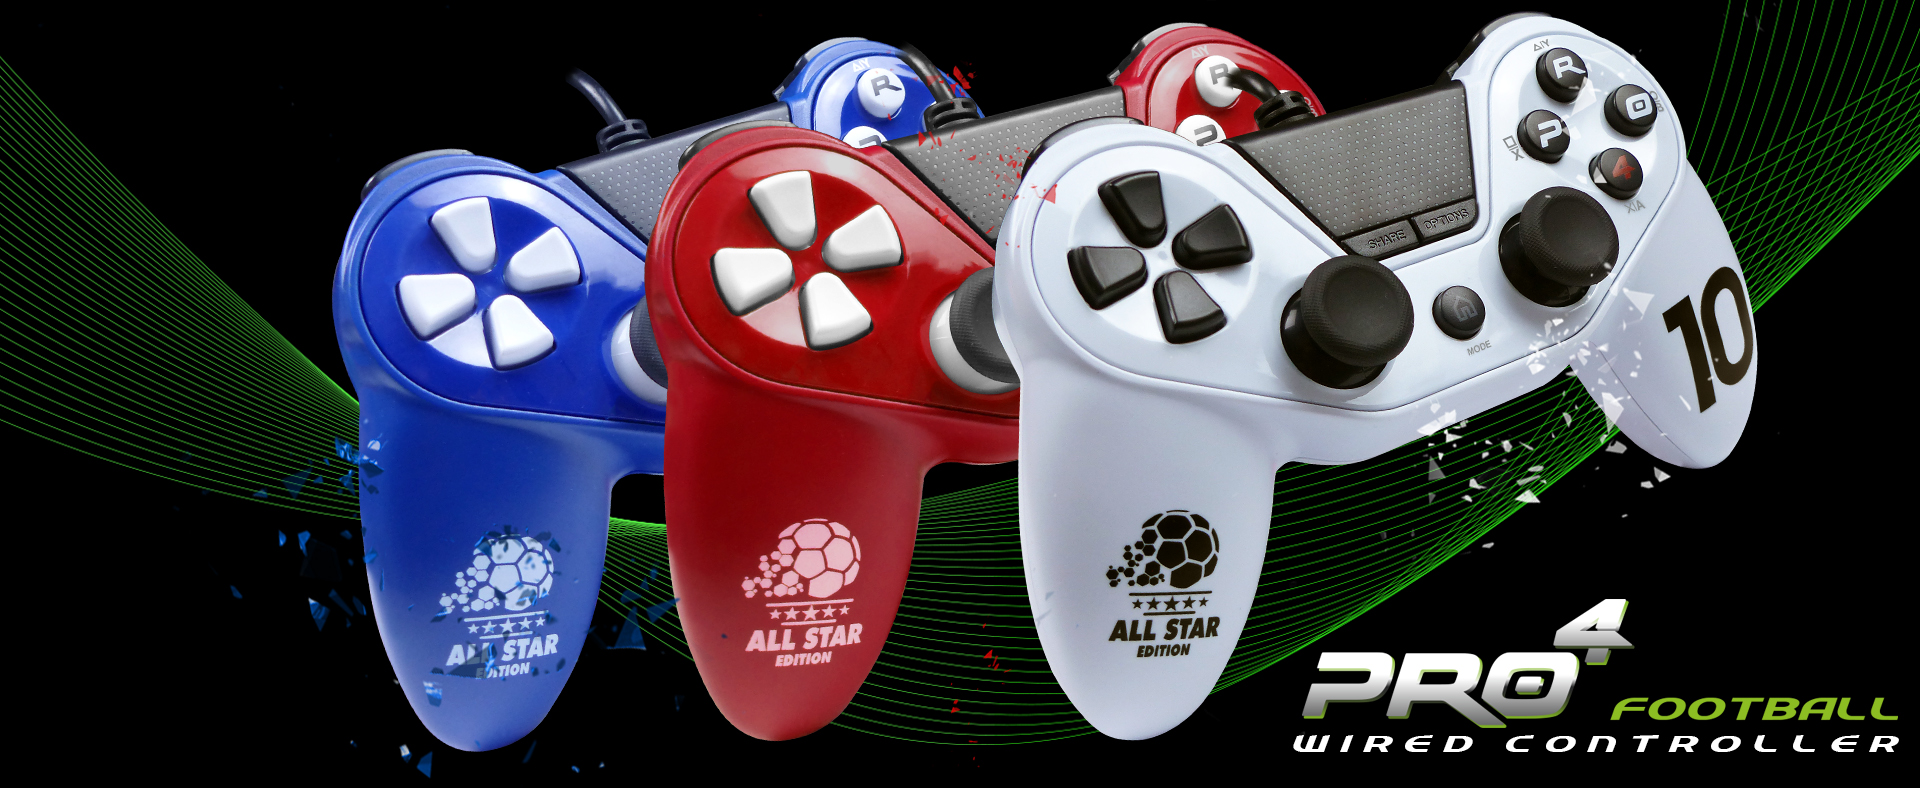 Collection Pro5 controller compatible with PS4 - Playstation 4